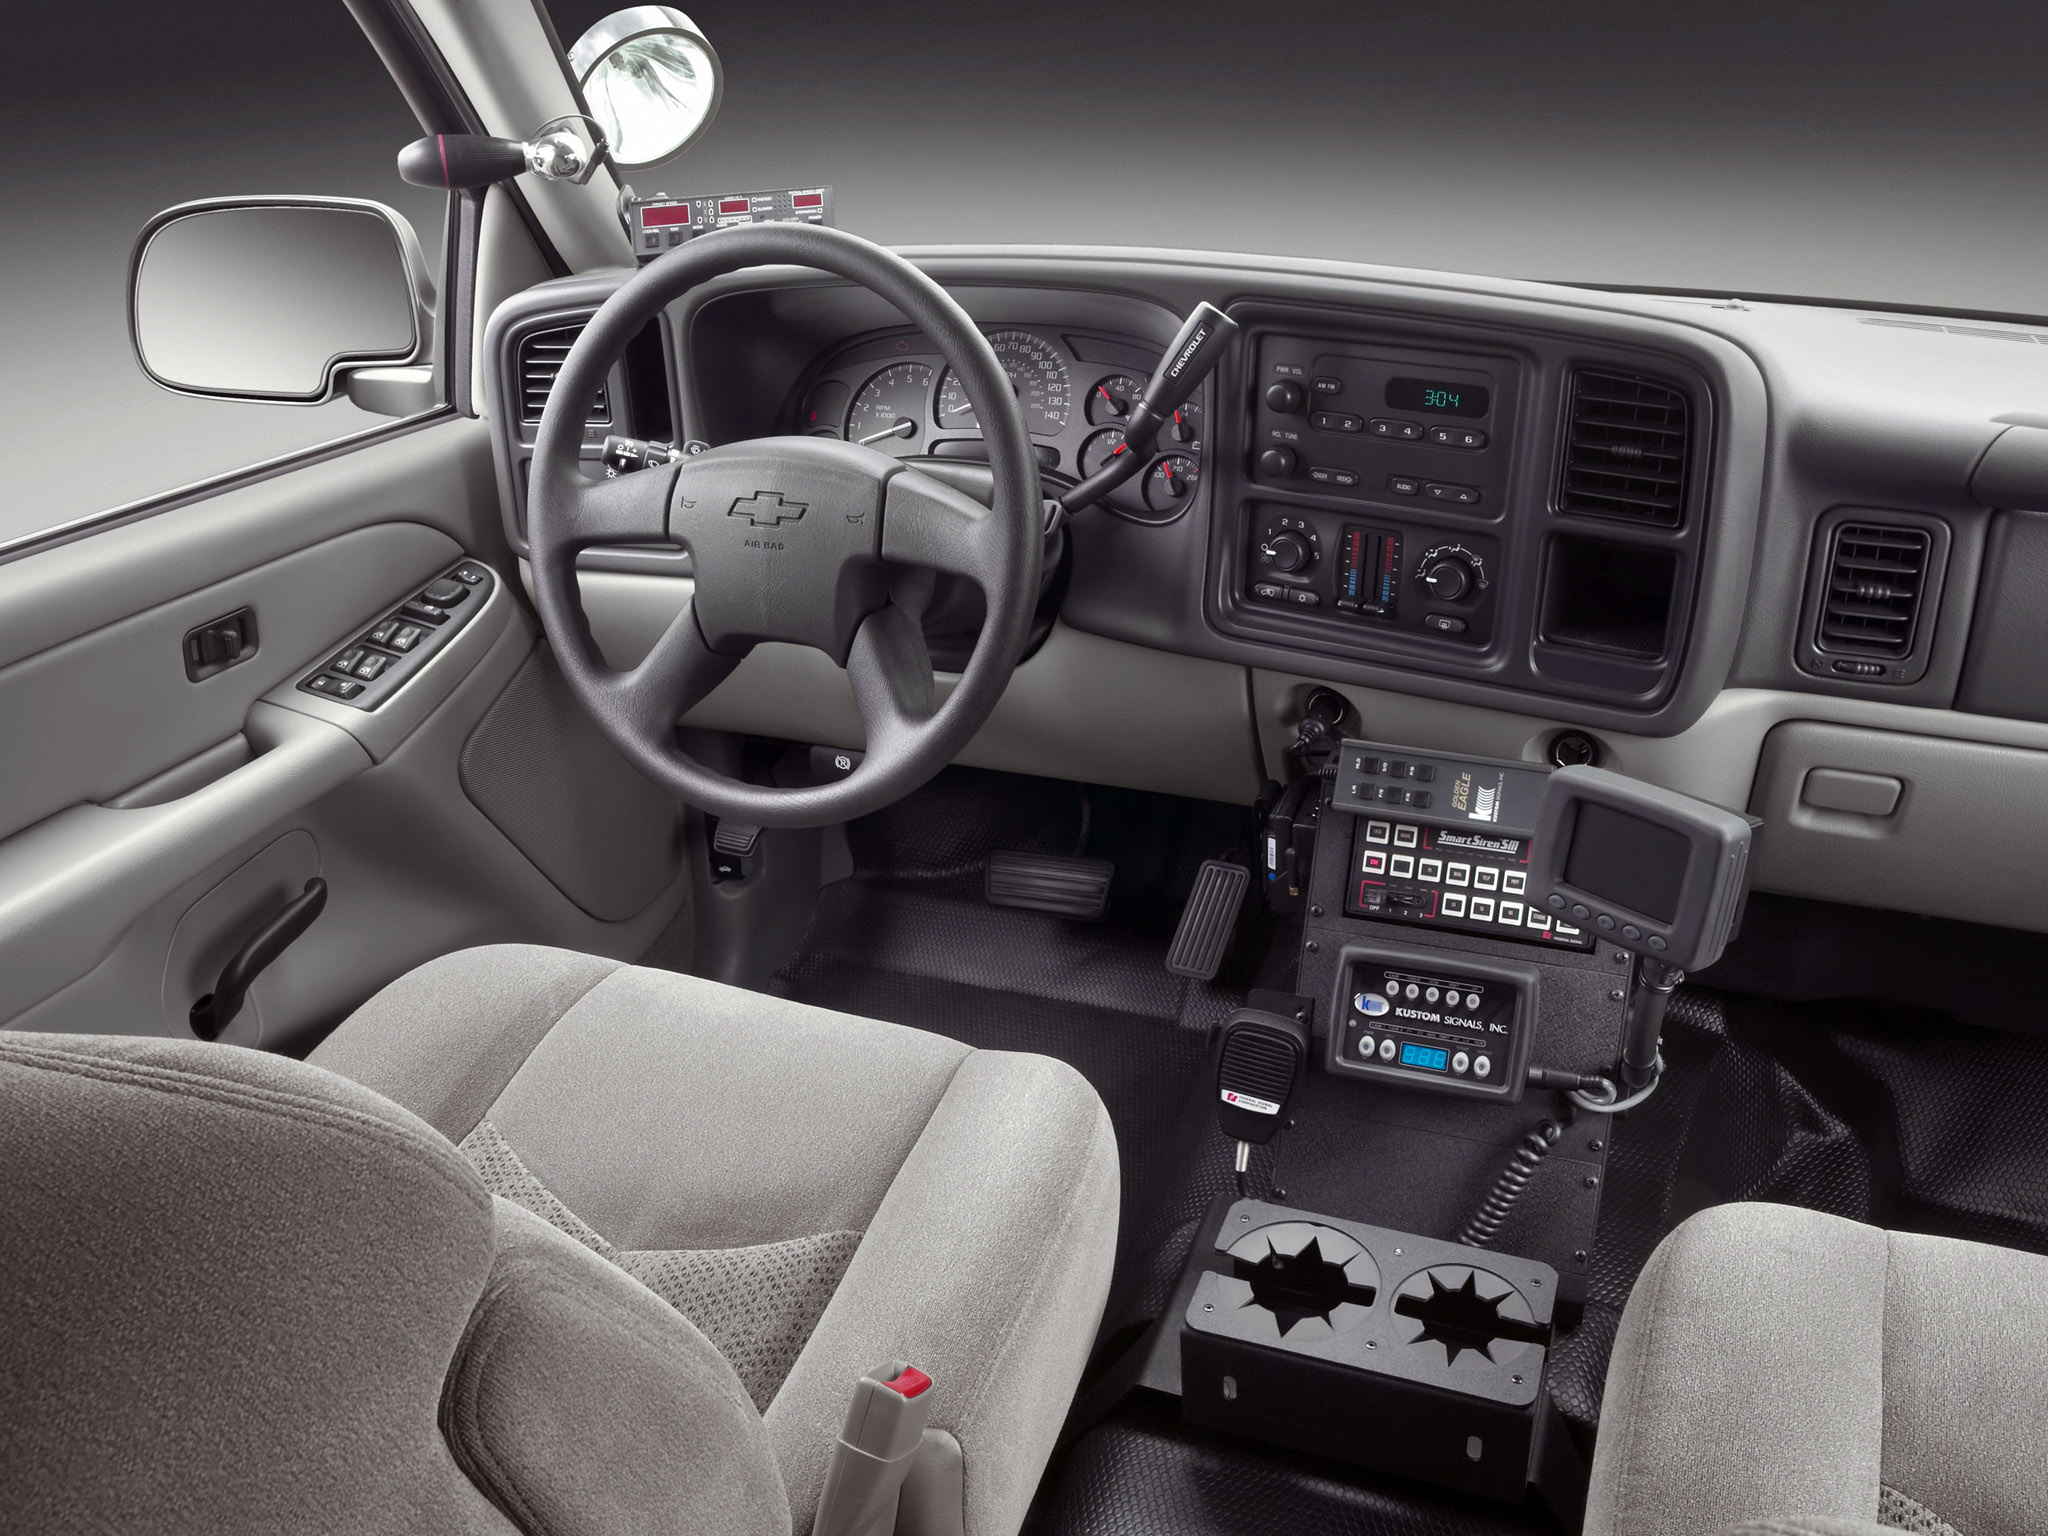 Worksheet. 2005 Chevrolet Tahoe gmt840  pictures information and specs